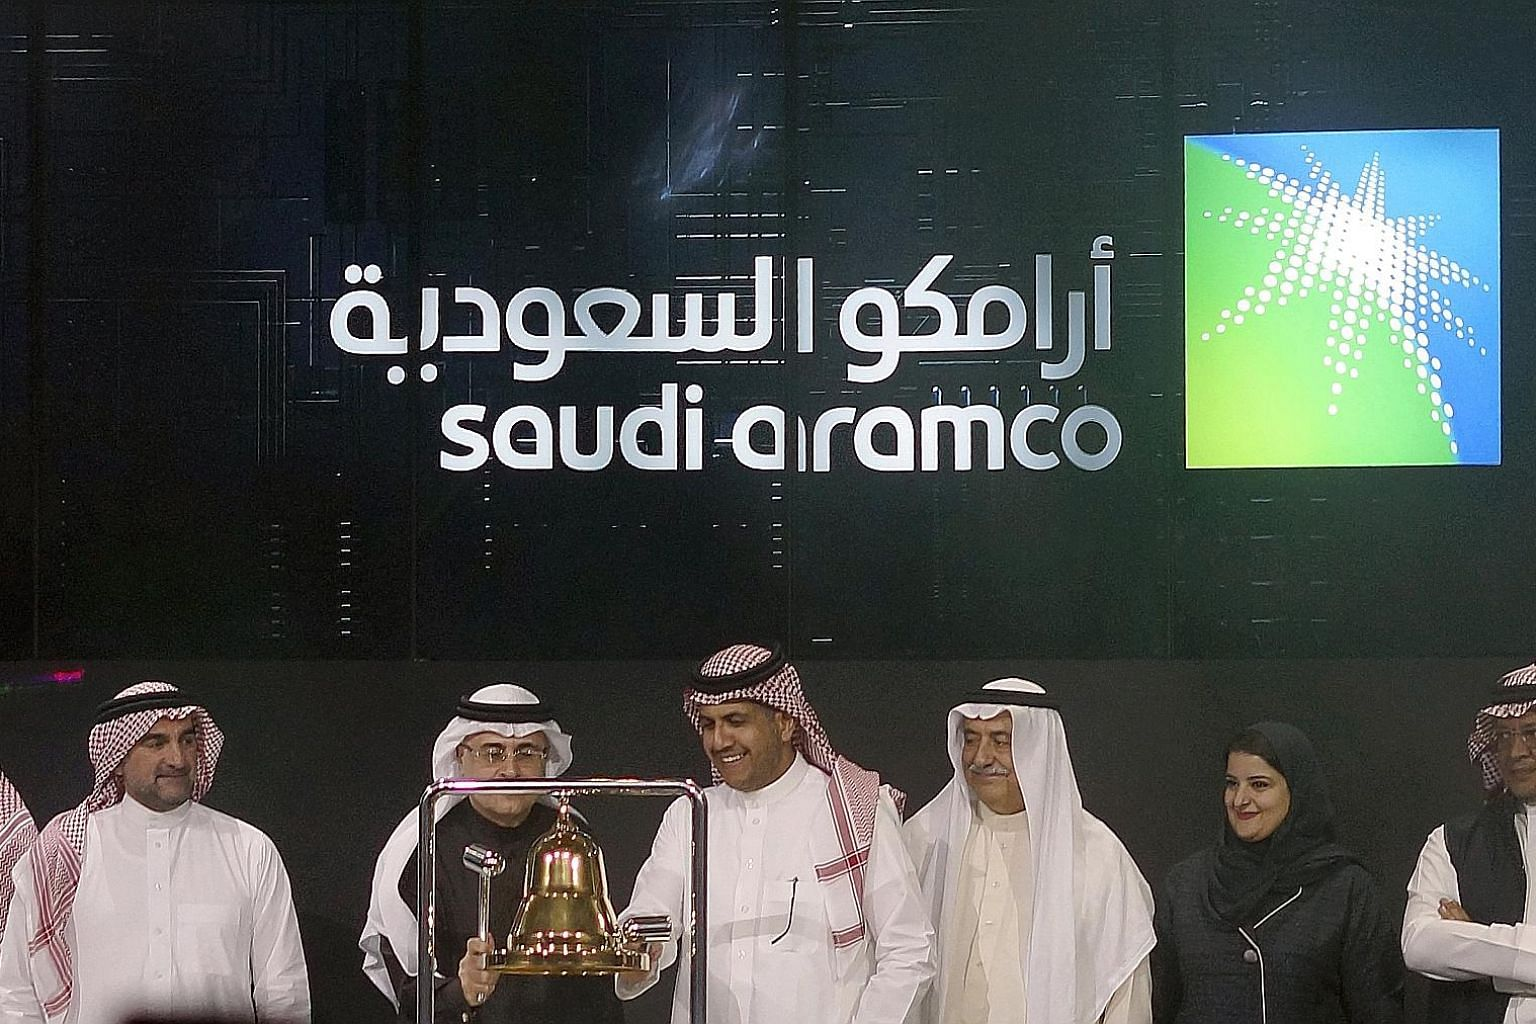 Saudi Arabia's state-owned oil giant Saudi Aramco and stock market officials at the official ceremony marking the debut of Aramco's initial public offering (IPO) on the Riyadh stock market yesterday. The Aramco shares leapt to 35.2 riyals (S$12.76) e